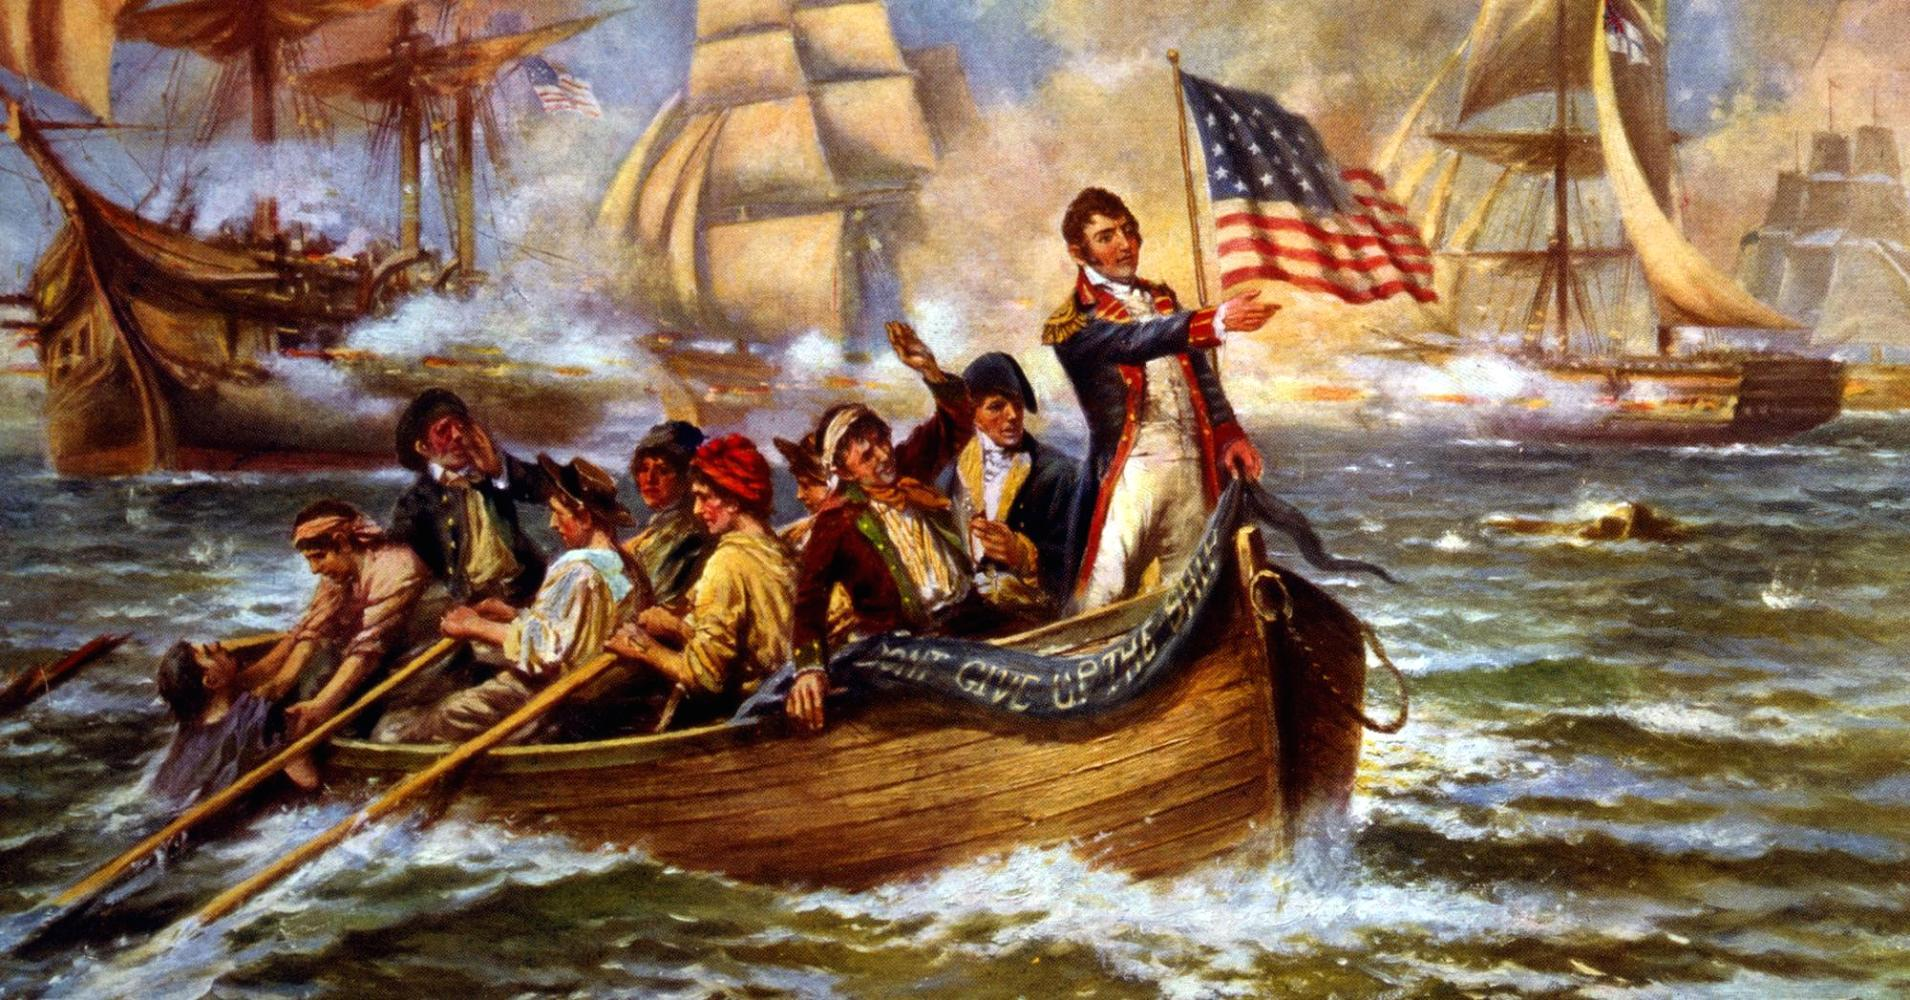 The war of 1812: Has the S&P 500 bottomed?